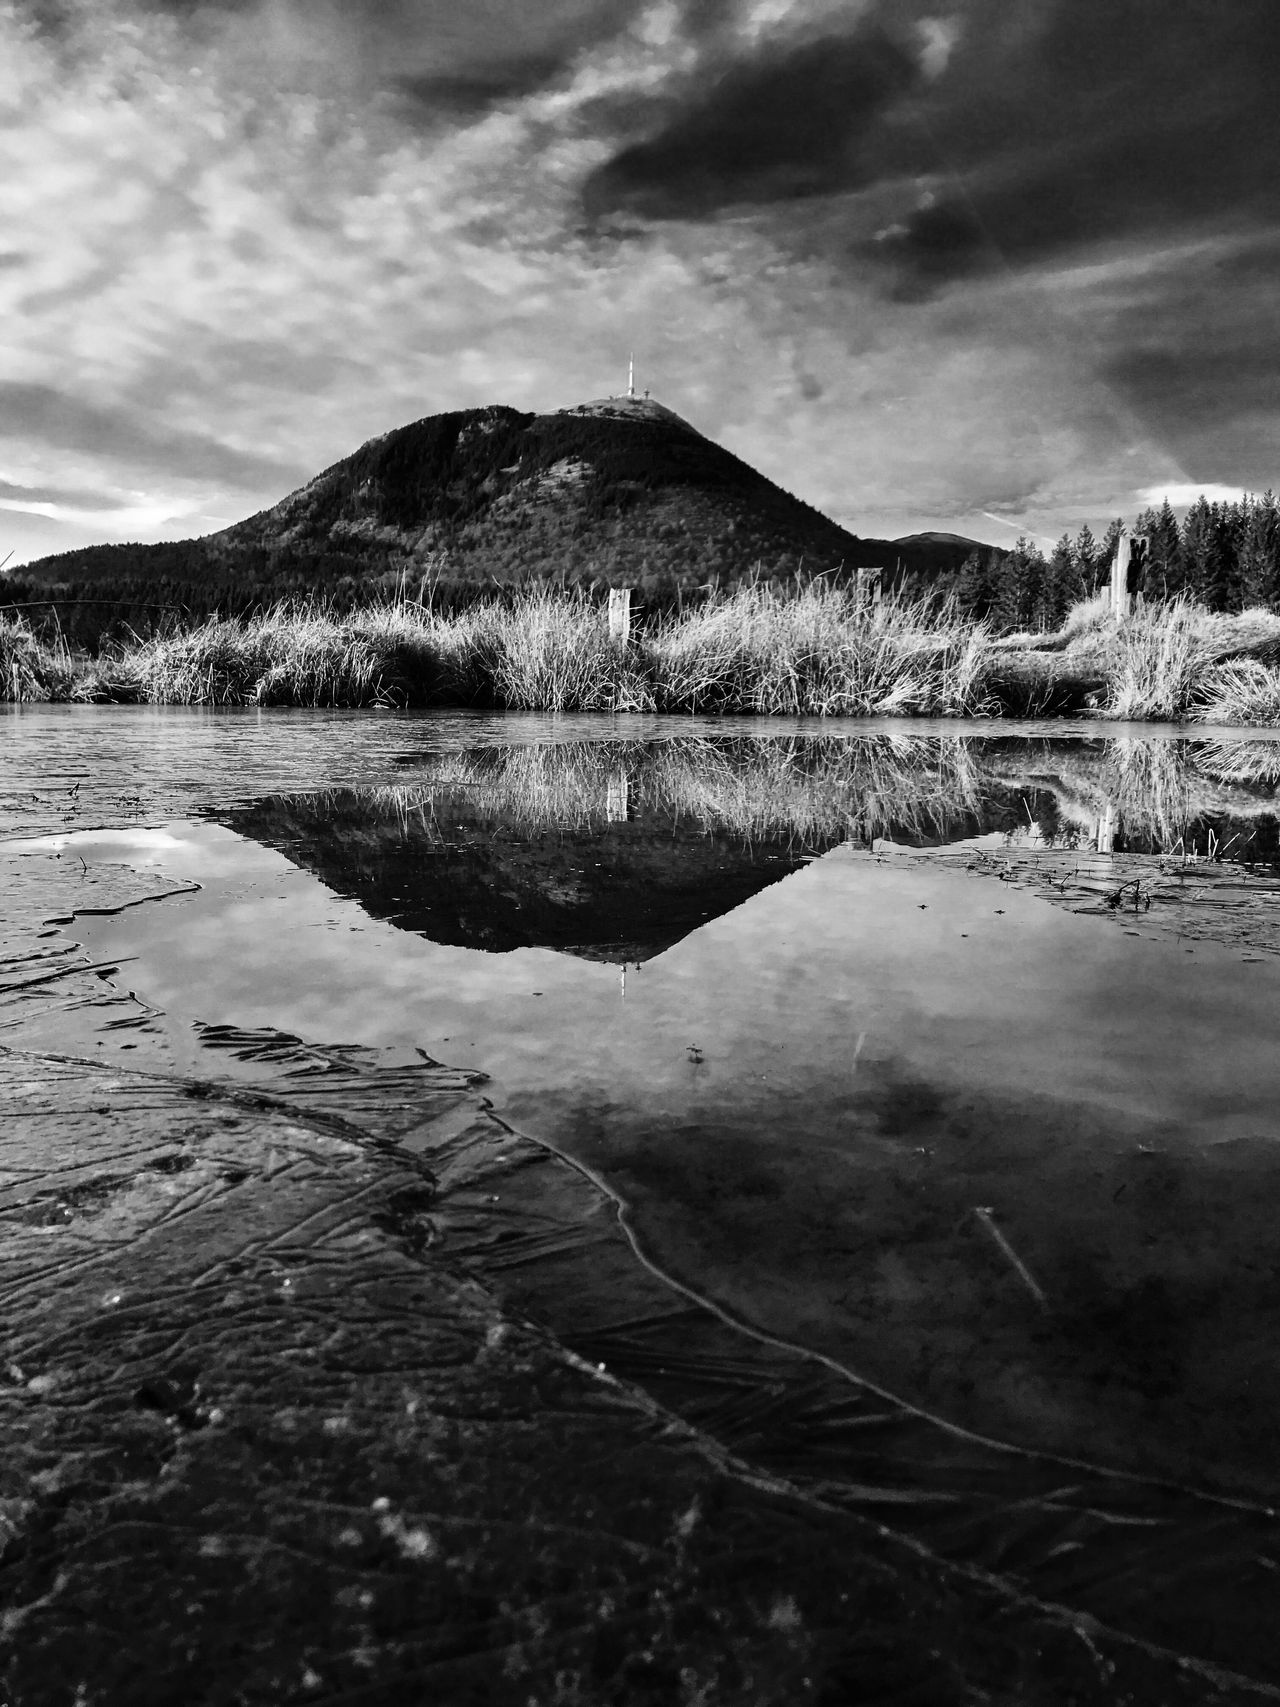 Reflection Reflections Puy De Dôme Puydedome Chainedespuys AuvergneRhoneAlpes Auvergne Myauvergne Nature No People Tranquility Cloud - Sky Tranquil Scene Outdoors Landscape Mountain Beauty In Nature Water Winter Cold Temperature Ice Day Scenics Sky Reflection_collection